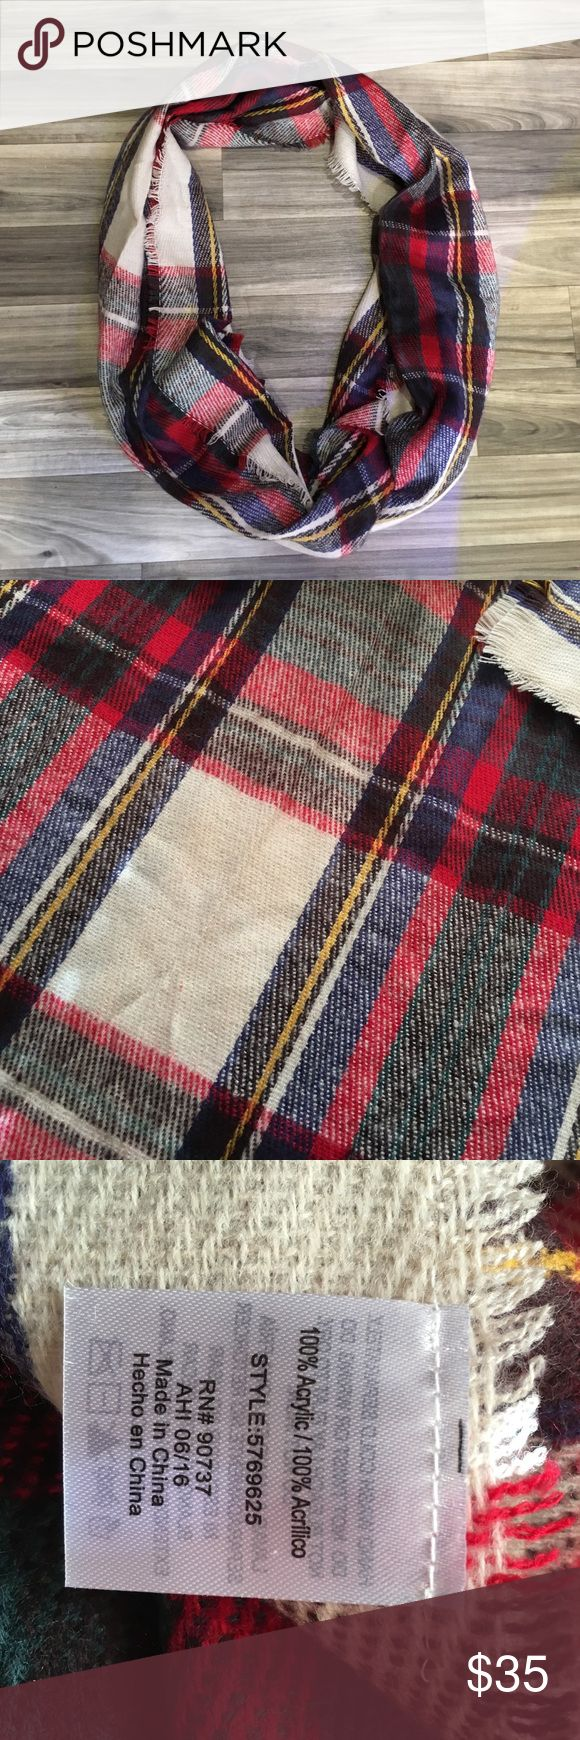 """NWOT! Plaid Blanket Scarf 74"""" long and 22"""" wide, adorable plaid blanket scarf! I changed my mind after purchasing and it has never been worn. Accessories Scarves & Wraps"""